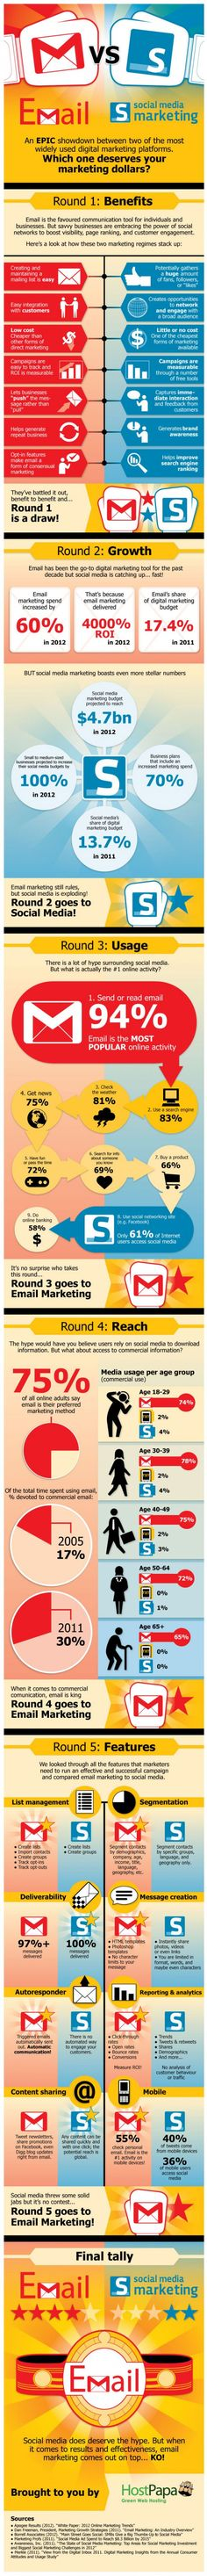 Social Media Infographic: An epic showdown between two of the most widely used digital marketing platforms. Which one deserves your marketing dollars? Spoiler Alert: Email Marketing Knocks Out Social Media in 5 Rounds Inbound Marketing, Social Marketing, Marketing Digital, Marketing Mail, Marketing Direct, Marketing Online, Mobile Marketing, Marketing And Advertising, Business Marketing